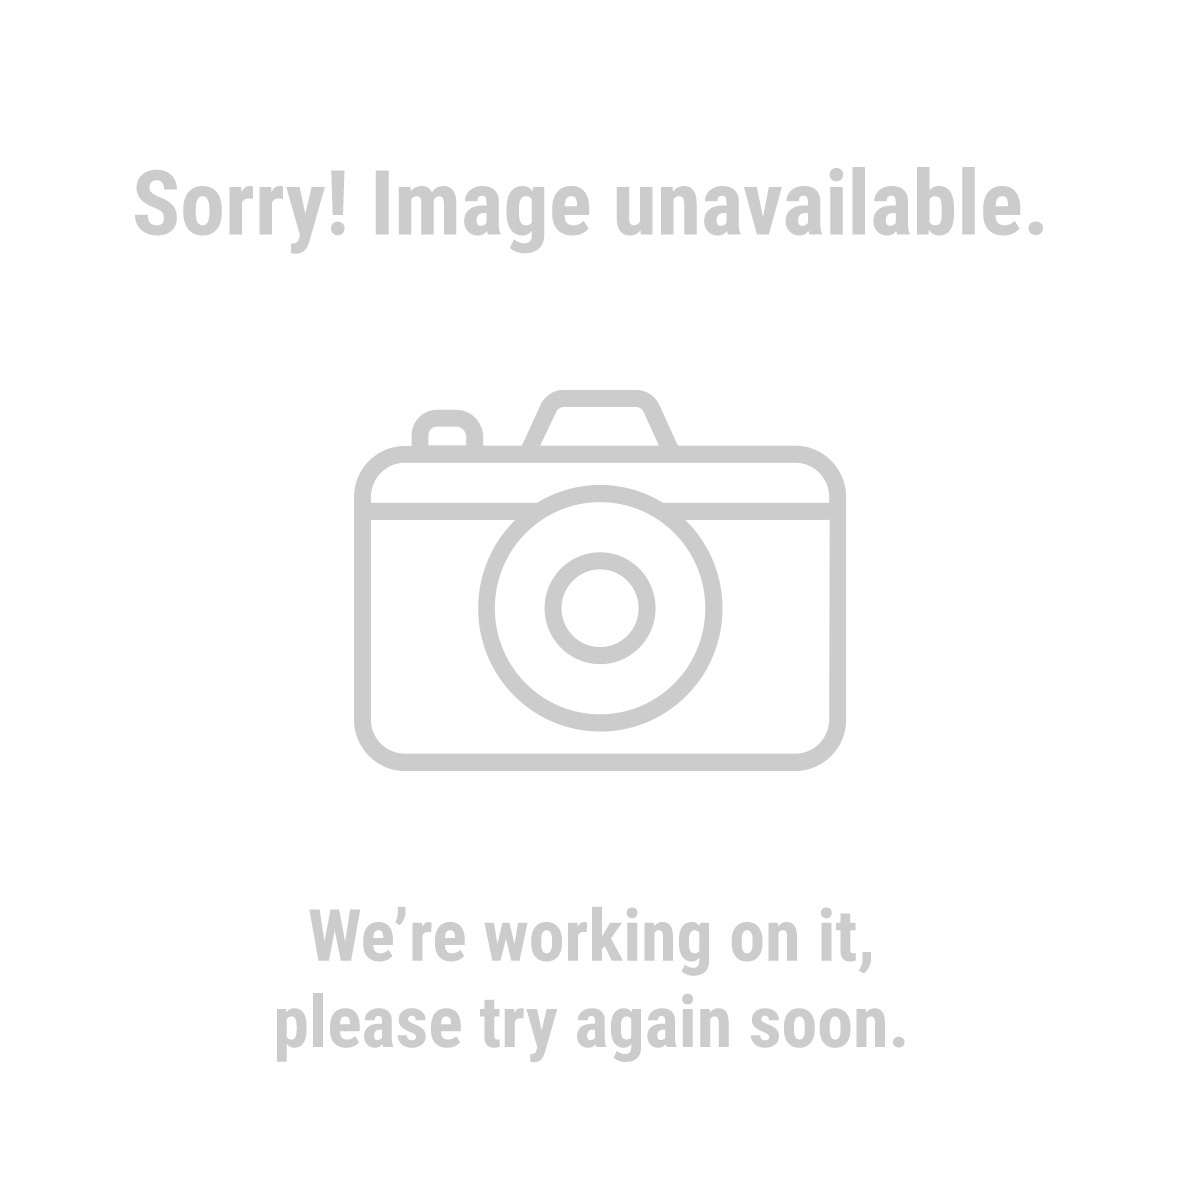 Pittsburgh 5962 25 Piece SAE Long-Reach and Metric Hex Key Set